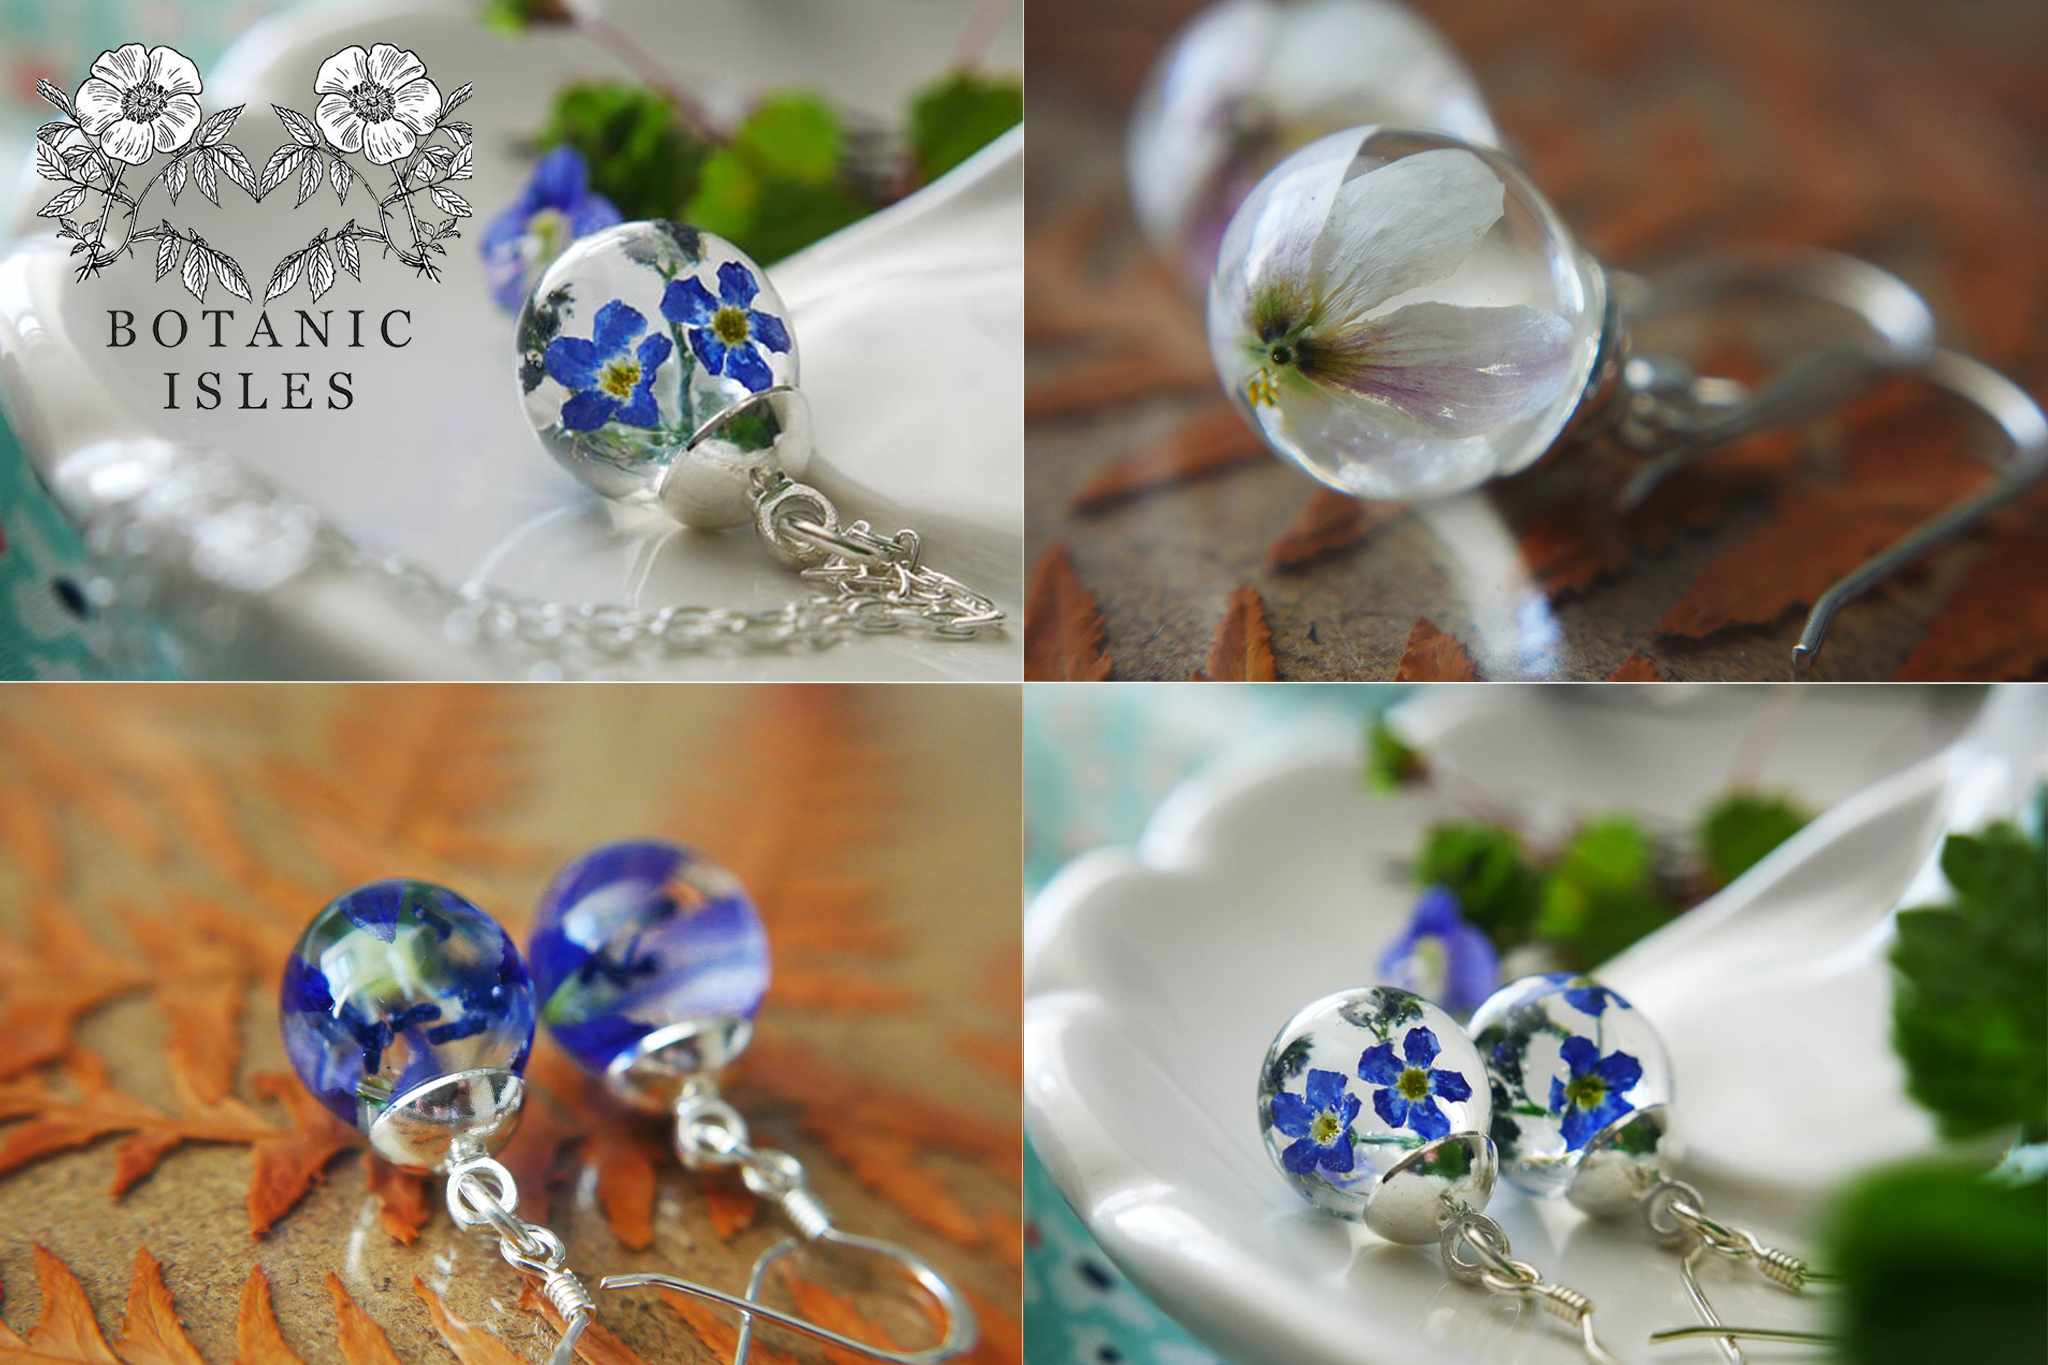 Win one of five set of wildflower jewellery from Botanic Isles